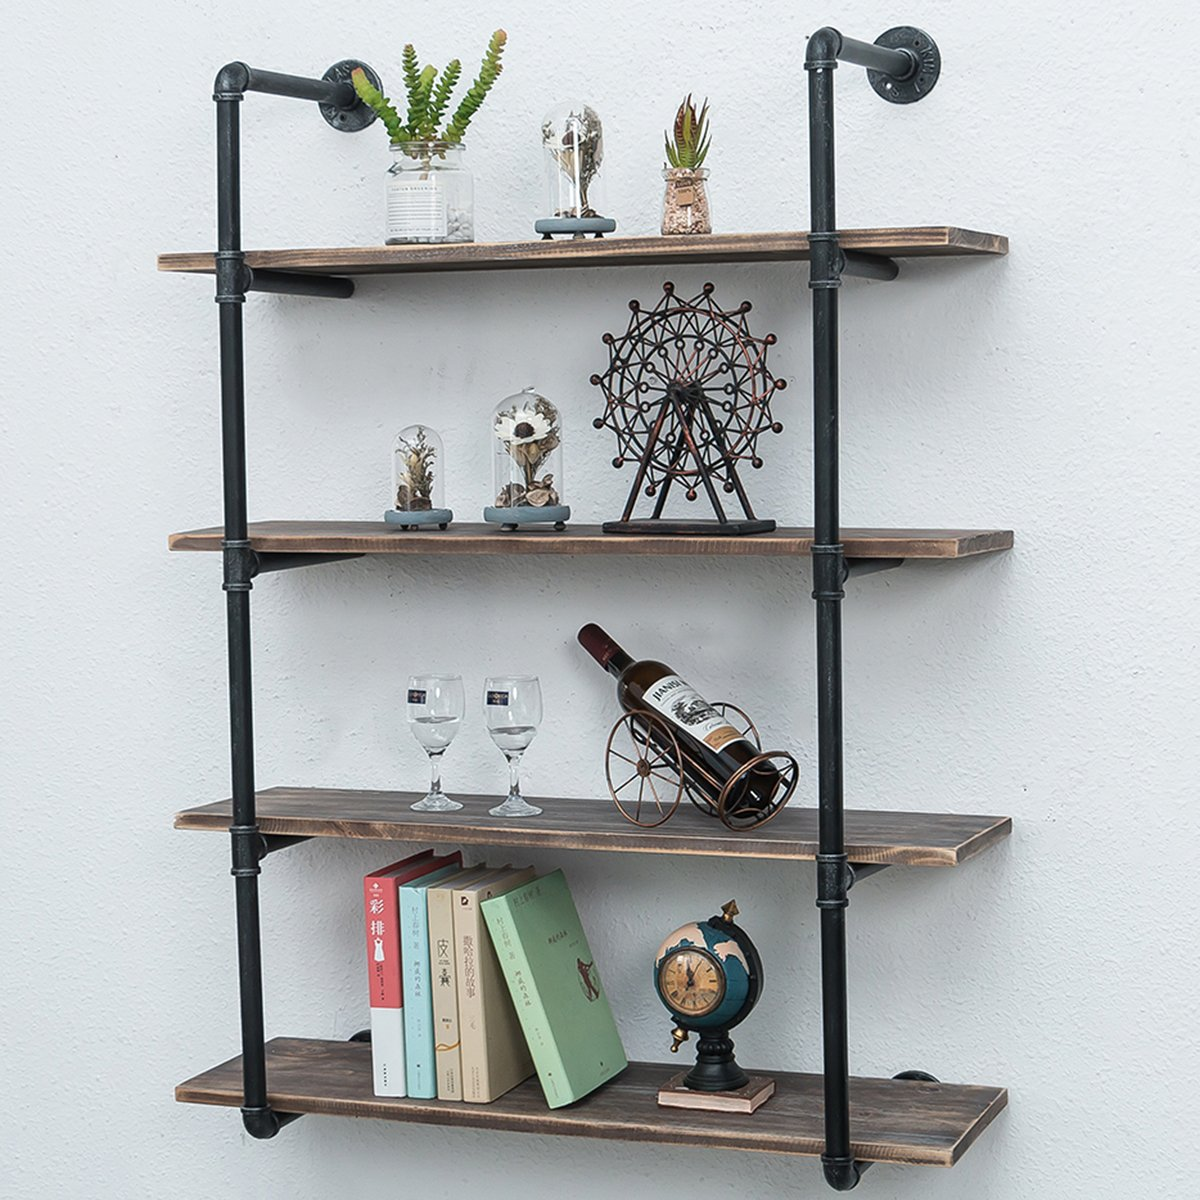 industrial pipe shelves with wood tiers rustic wall mount shelf metal hung bracket bookshelf diy storage shelving floating pipes decor ideas free standing kitchen best removable